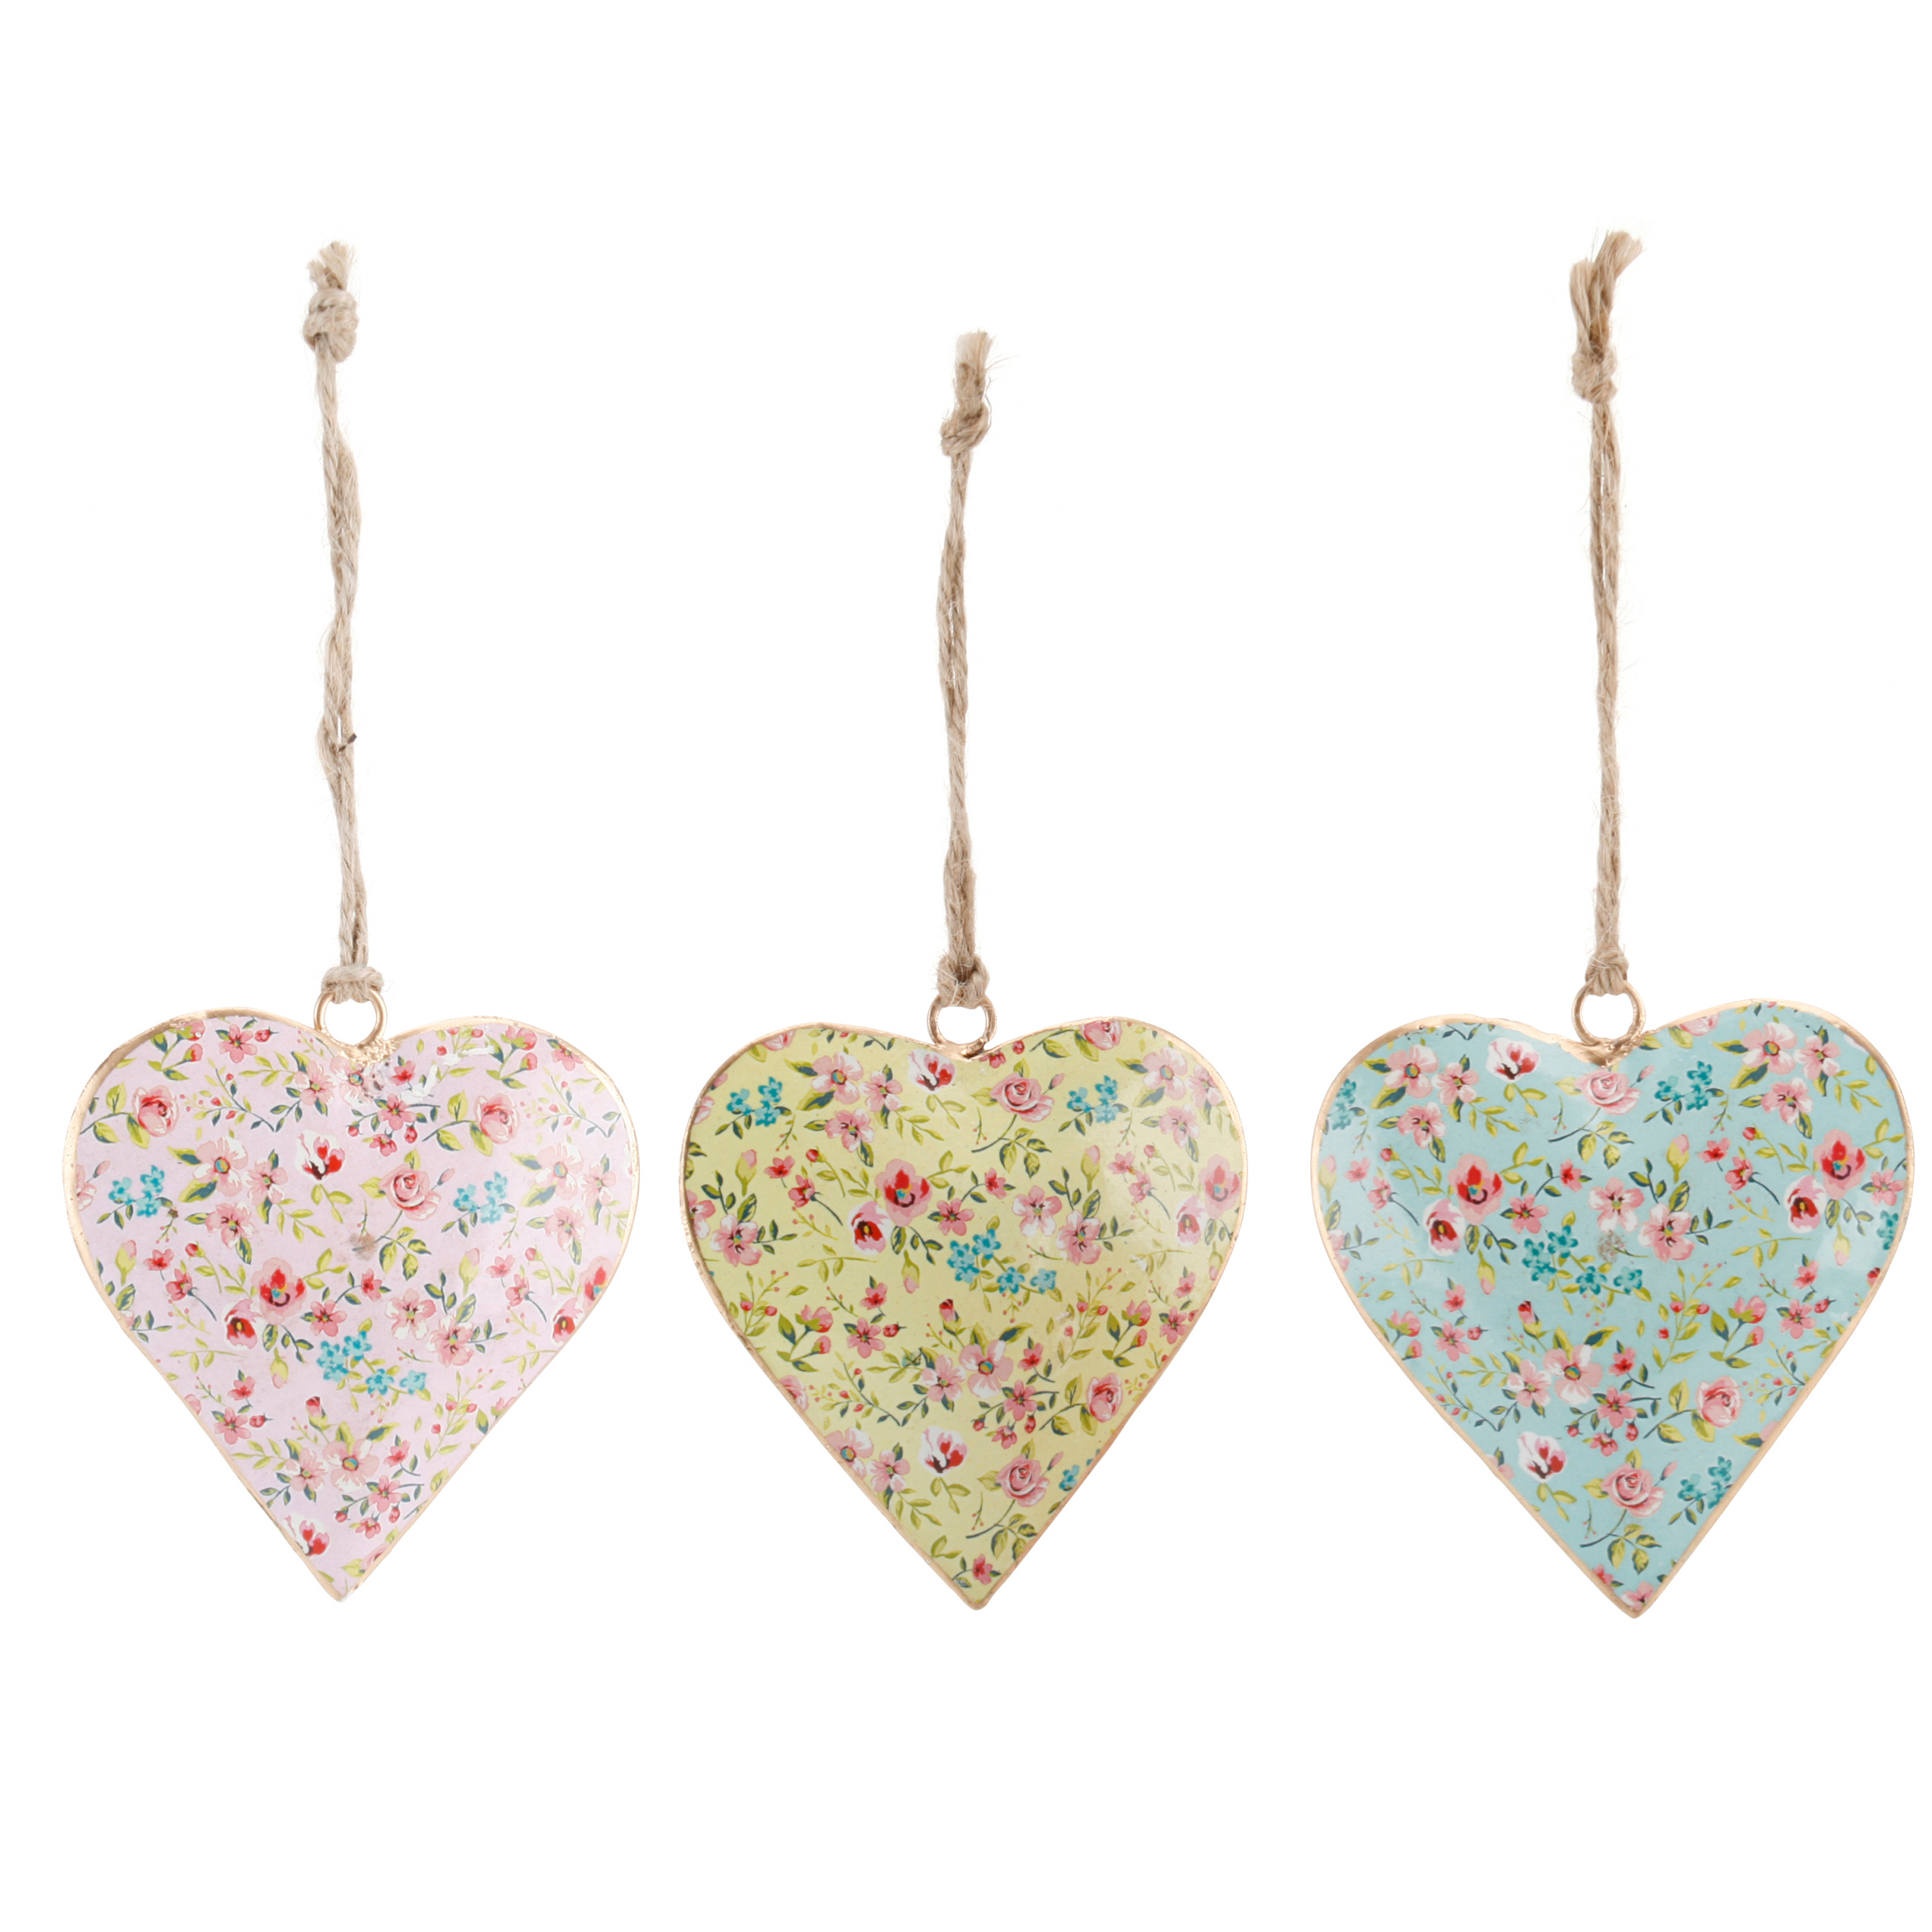 Small floral hanging heart